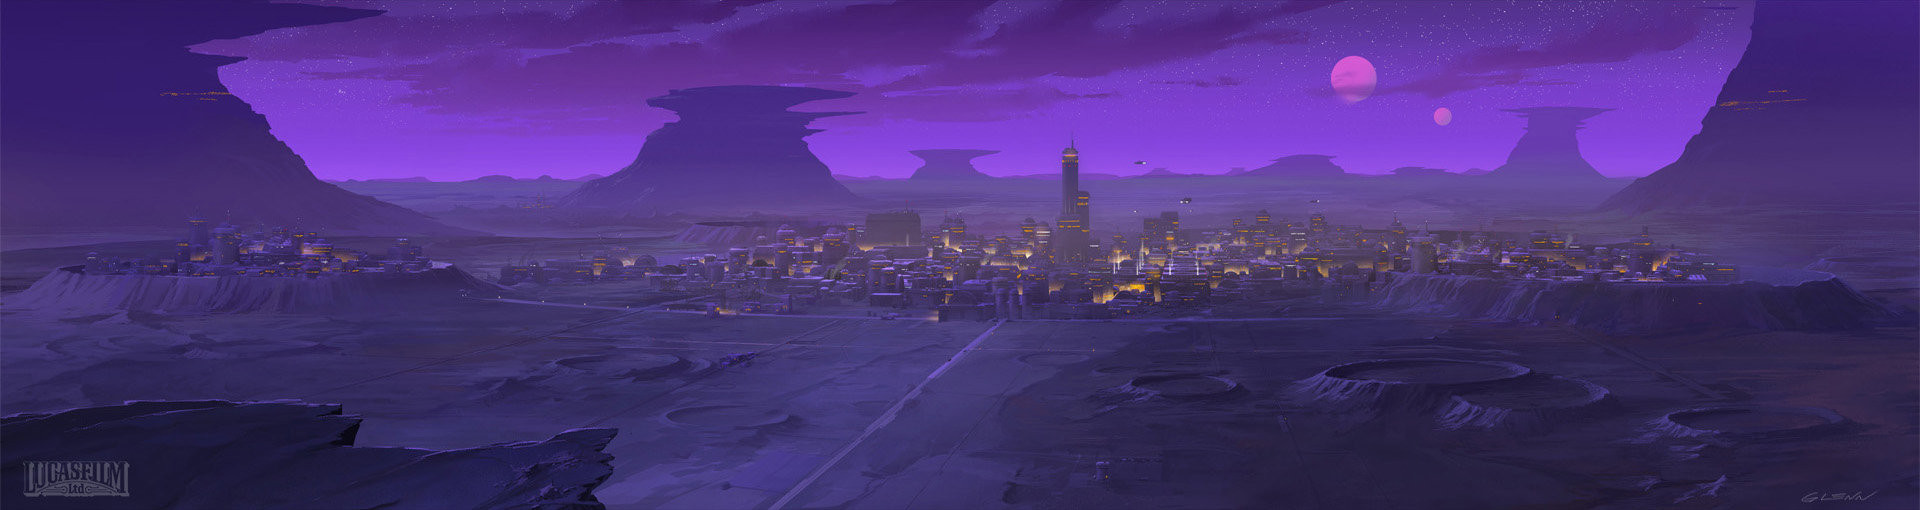 Rebels_nightcity.jpg